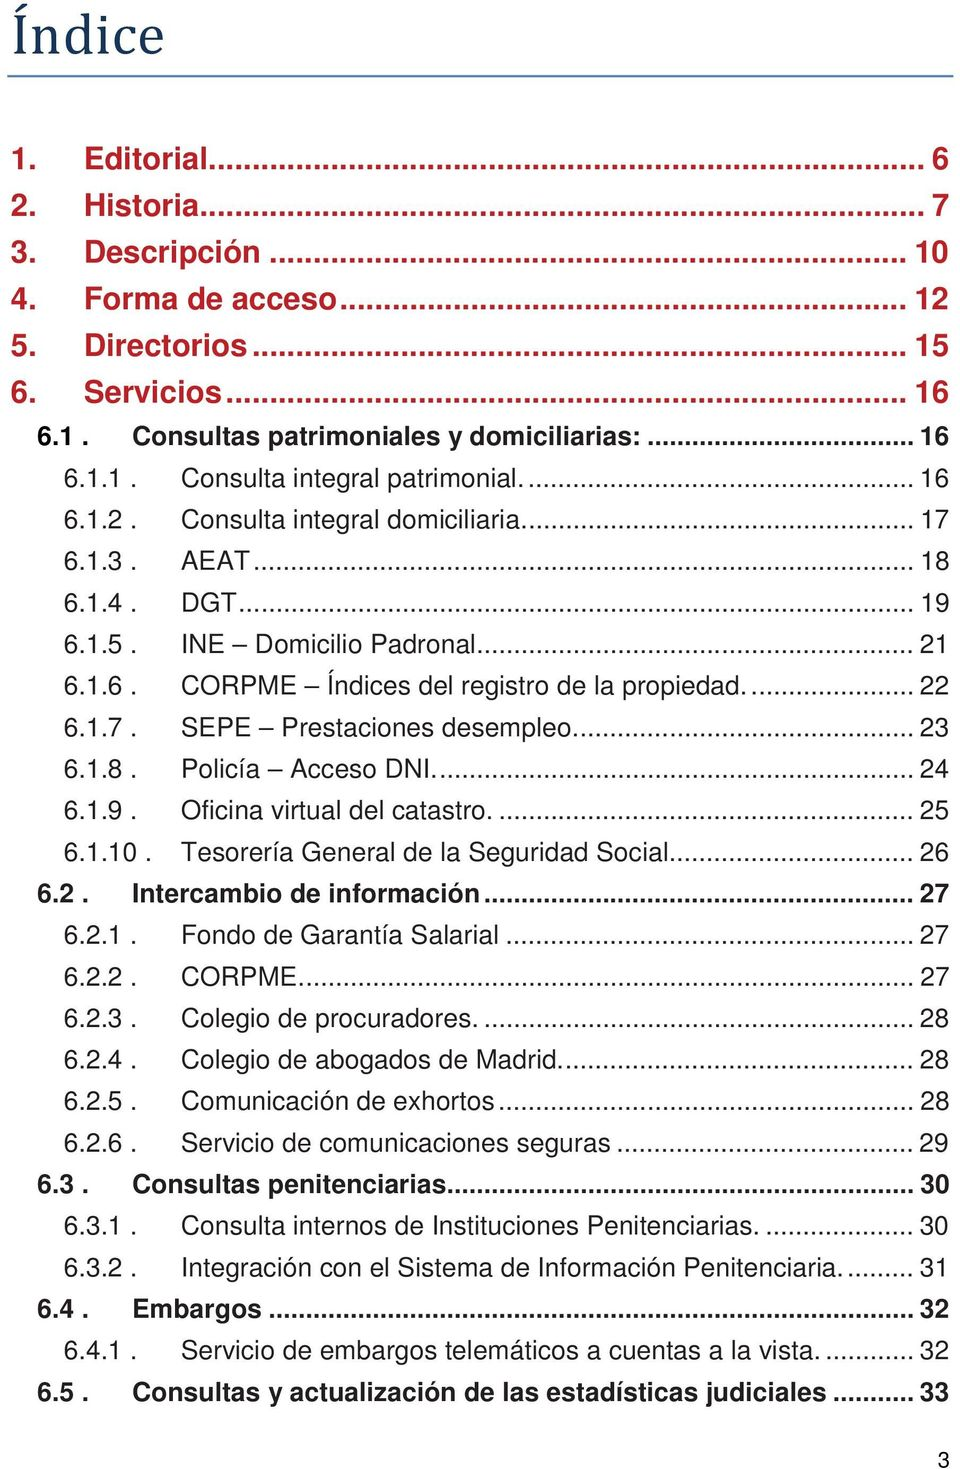 Punto neutro judicial pdf for Sepe oficina virtual